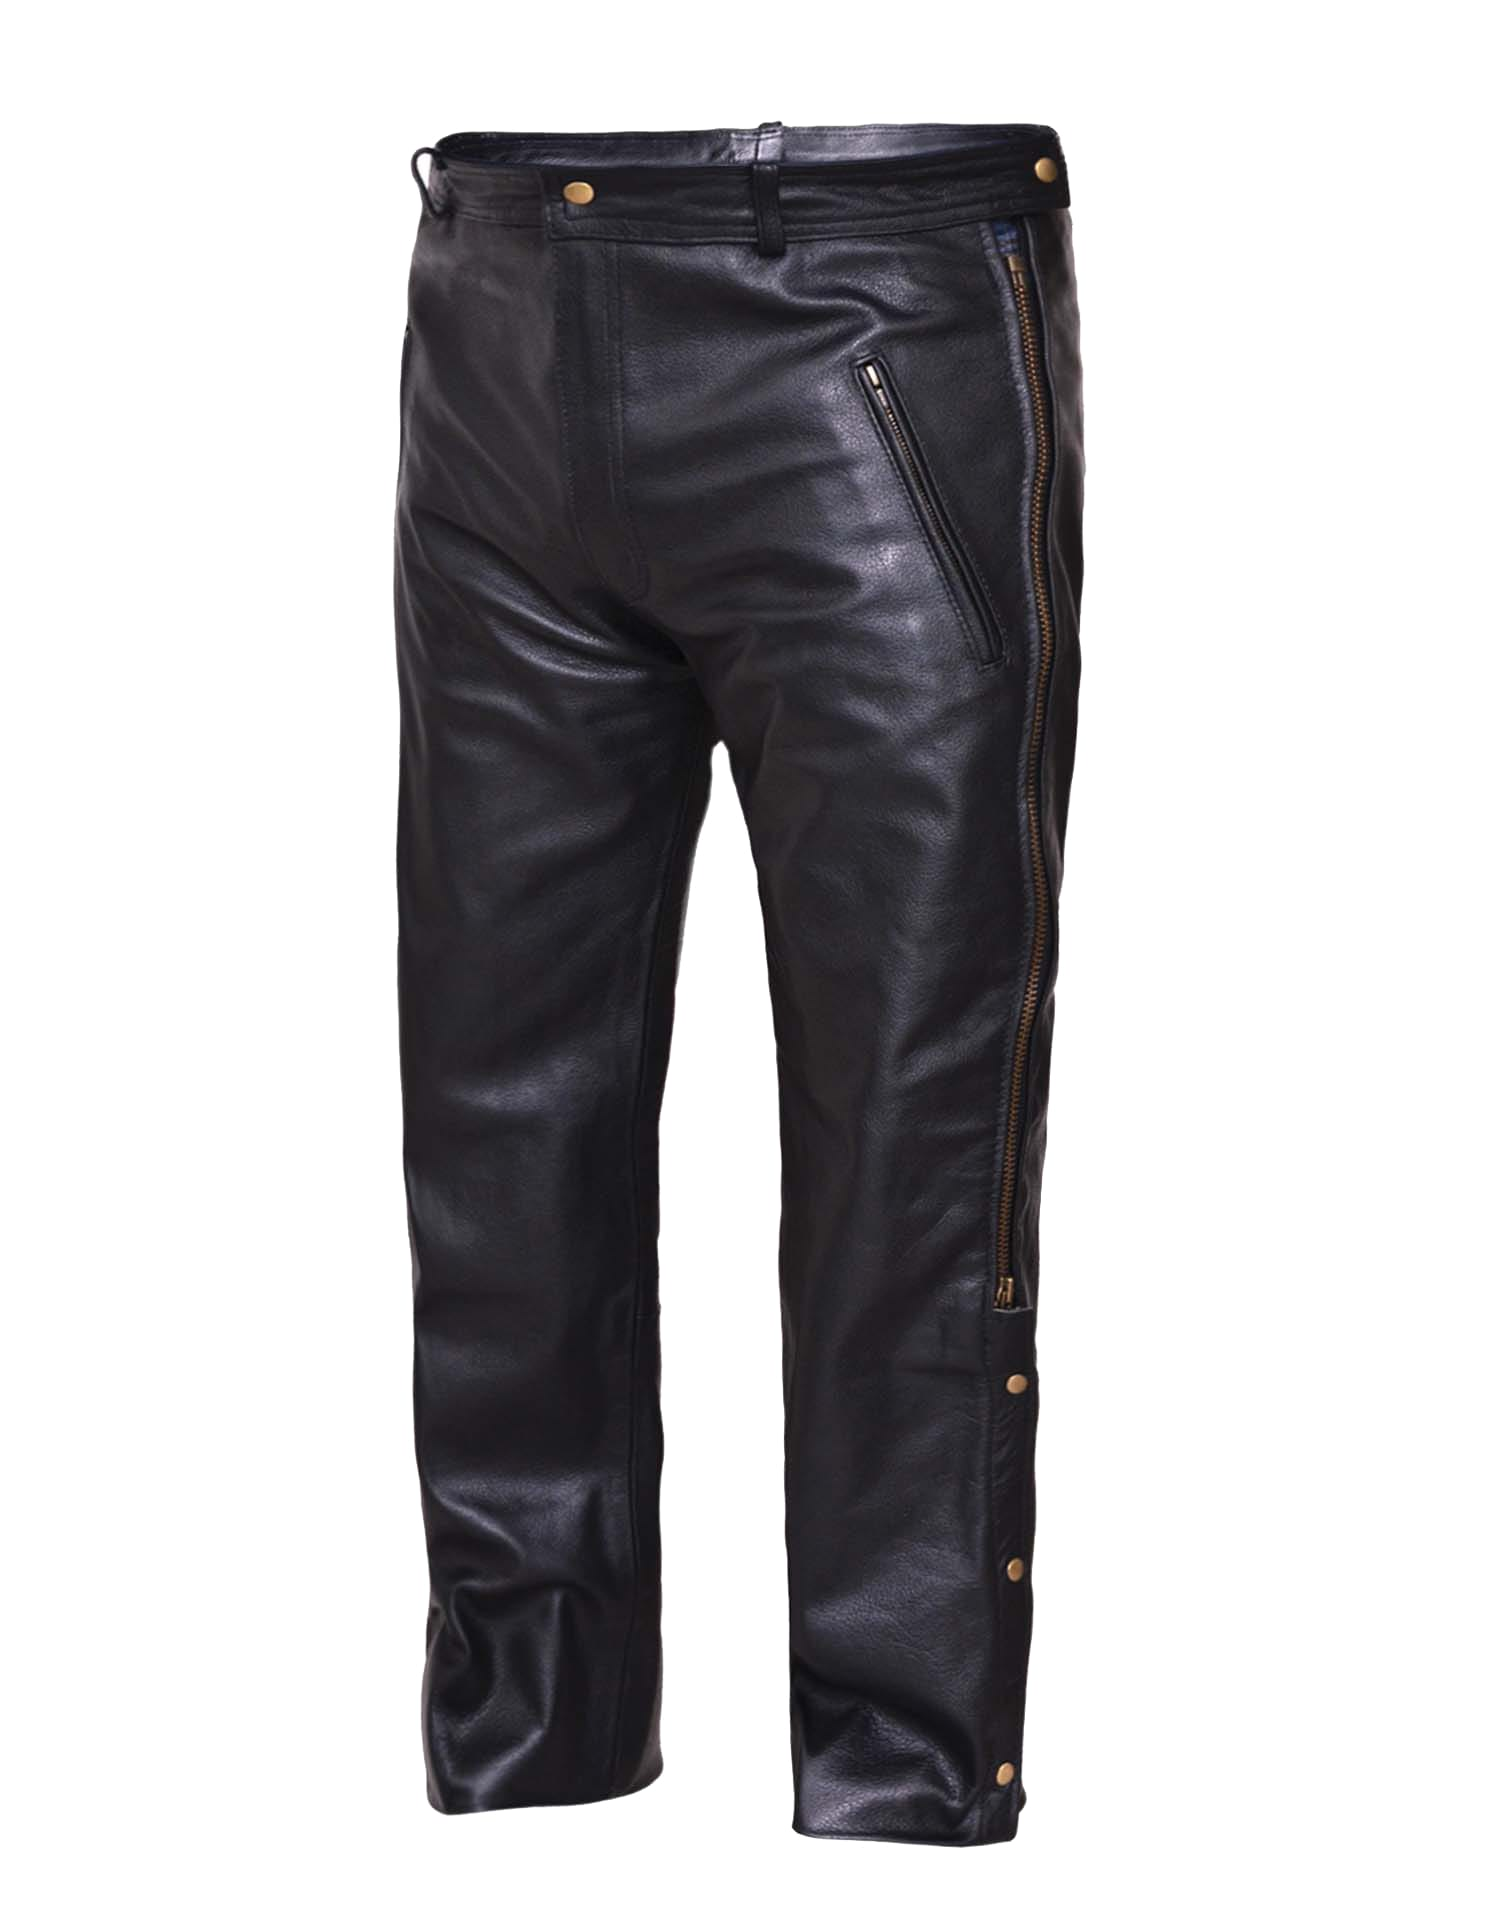 d2db7f30345e 0765-00-BLK - Men s Premium Leather Pants